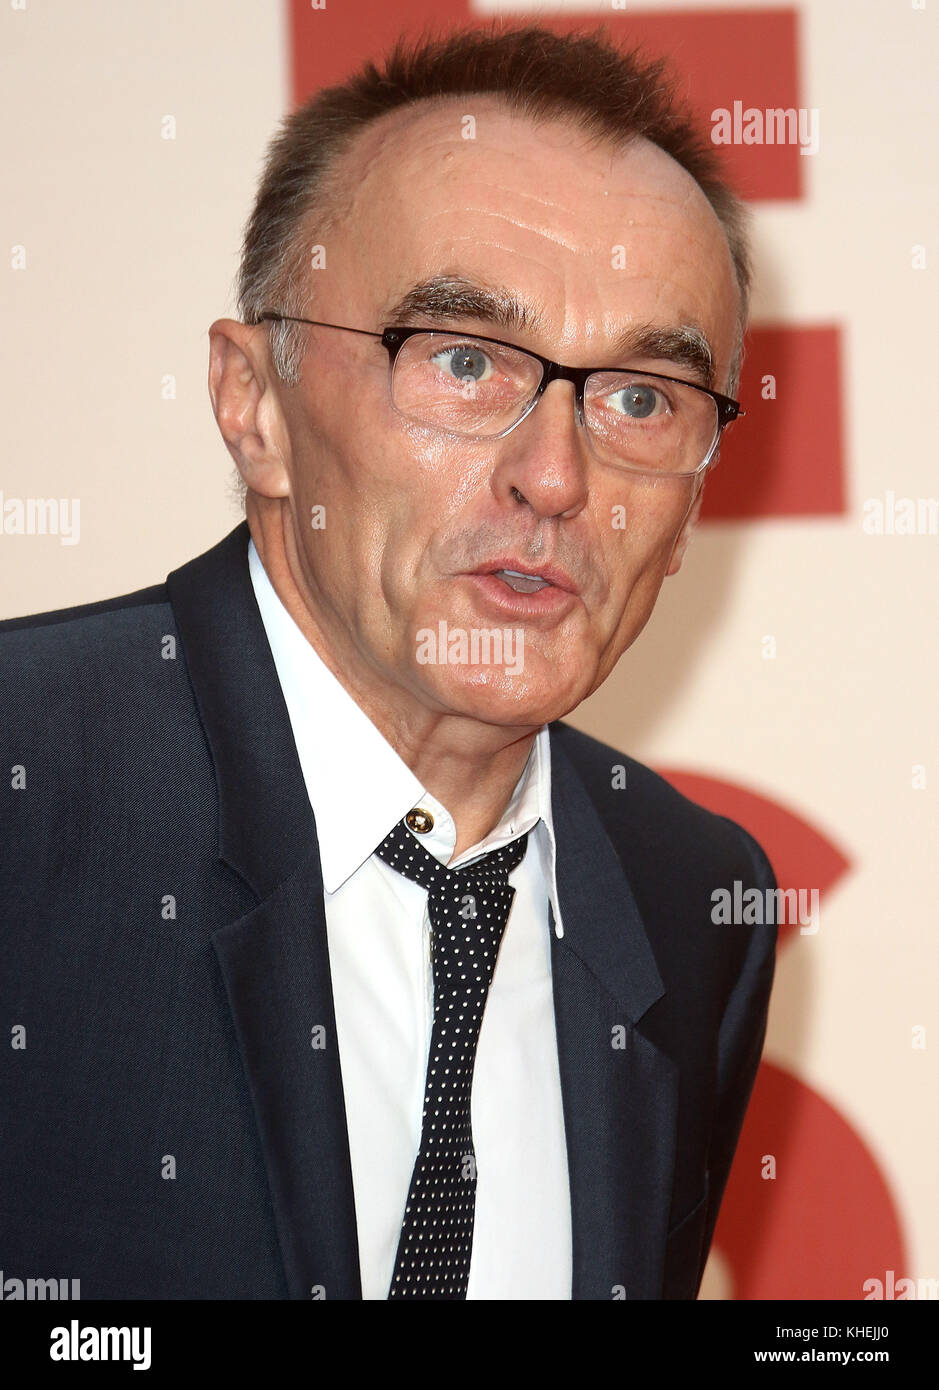 Oct 07, 2017 - Danny Boyle attending 61st BFI London Film Festival - 'Battle of the Sexes' European Premiere, - Stock Image